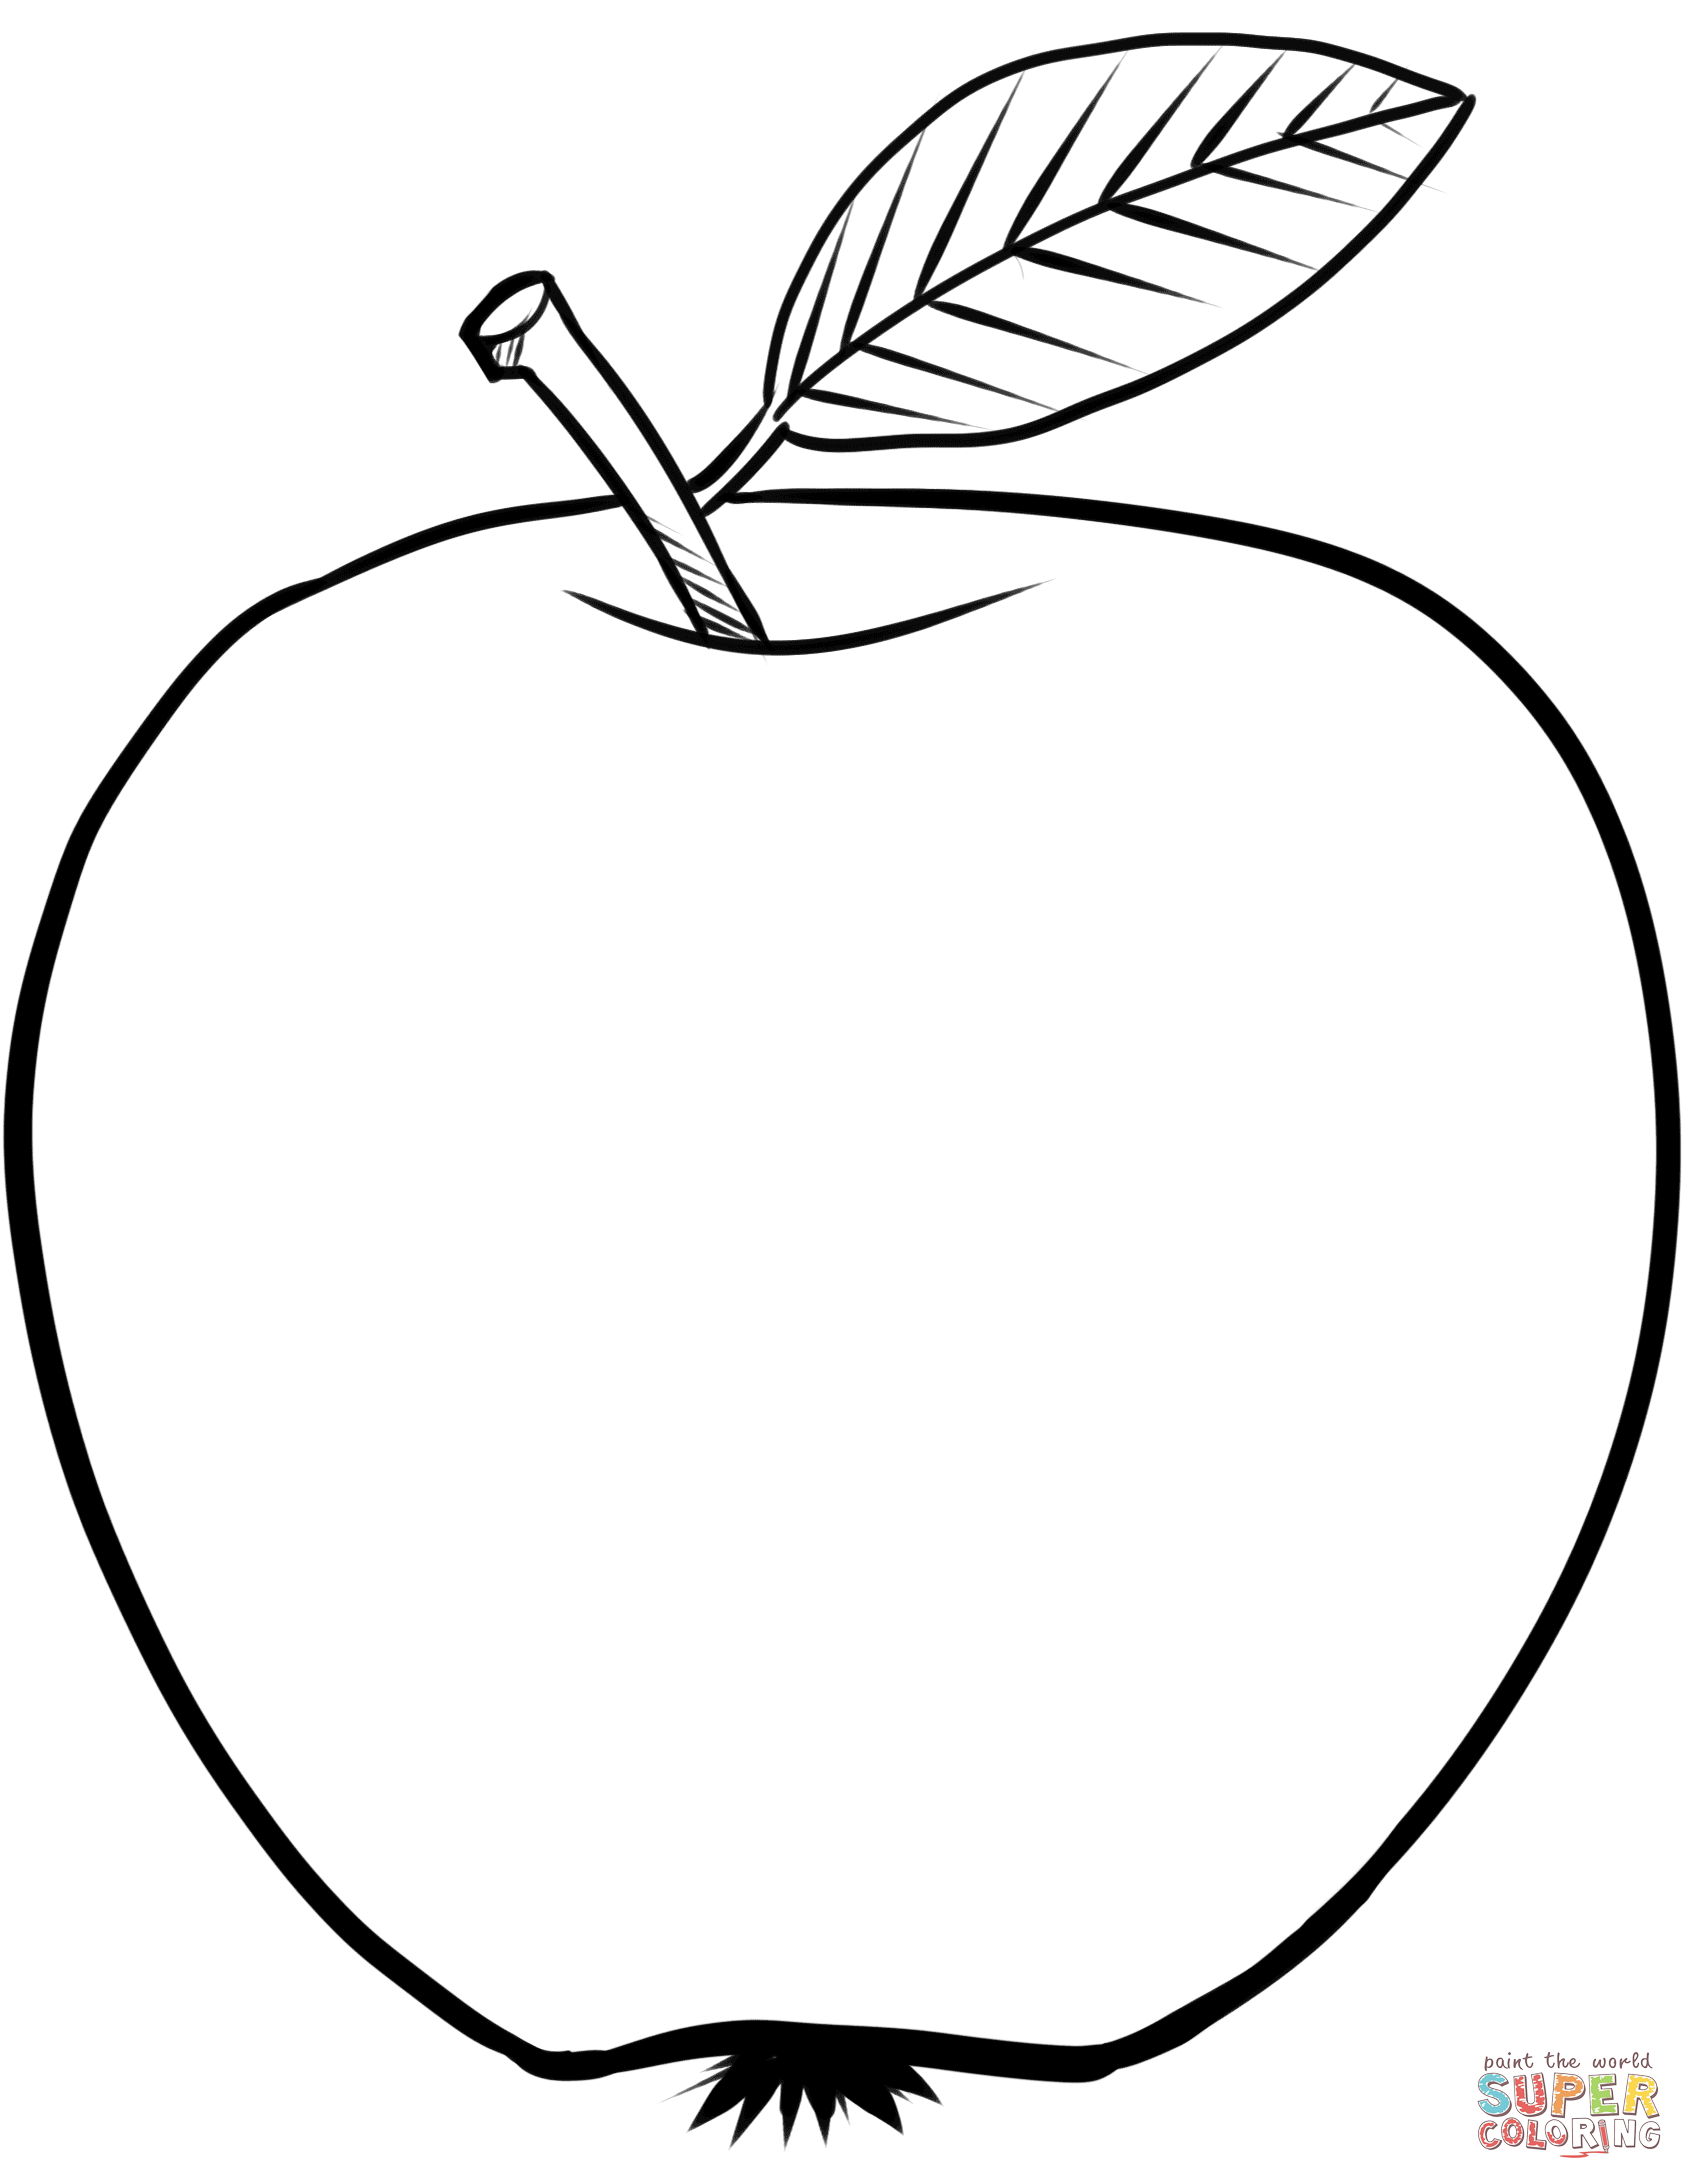 Free Apple Coloring Pages With Apples Coloring Pages For Adult